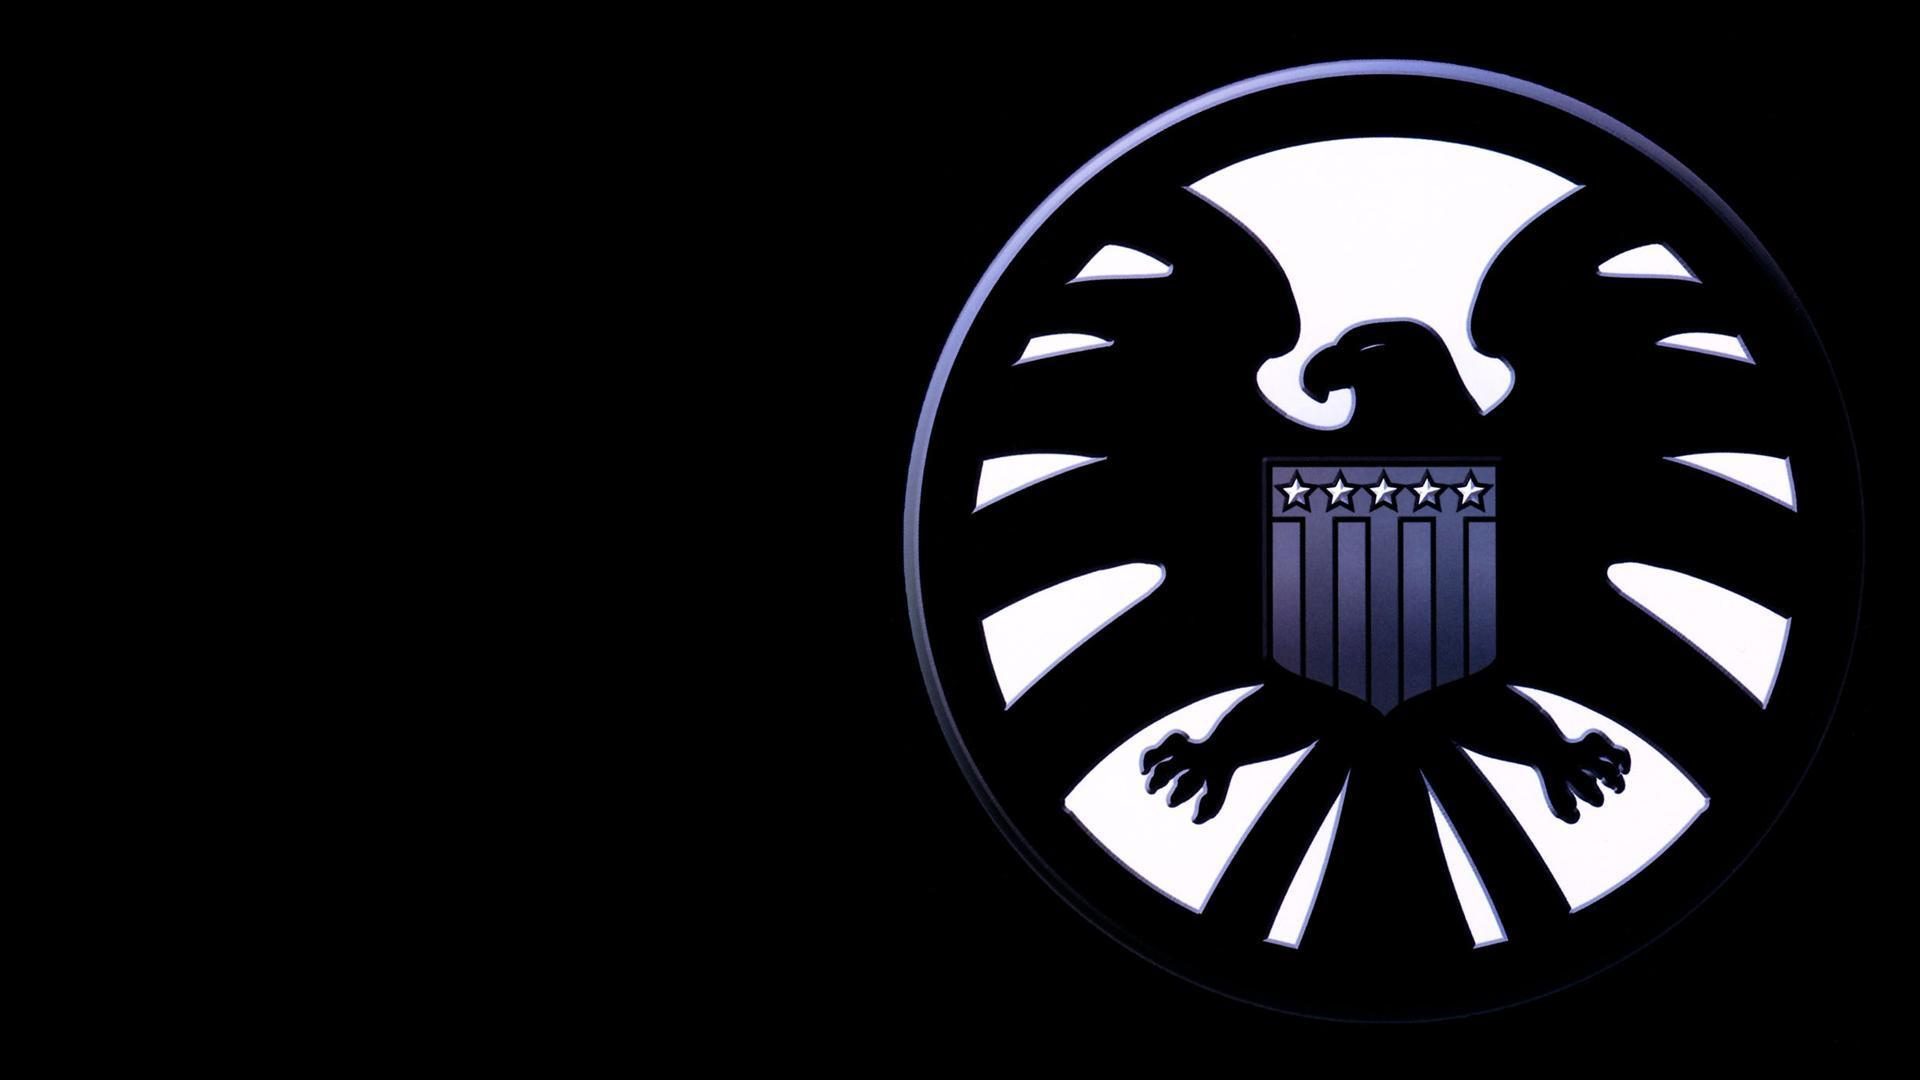 S.H.I.E.L.D Wallpapers - Wallpaper Cave